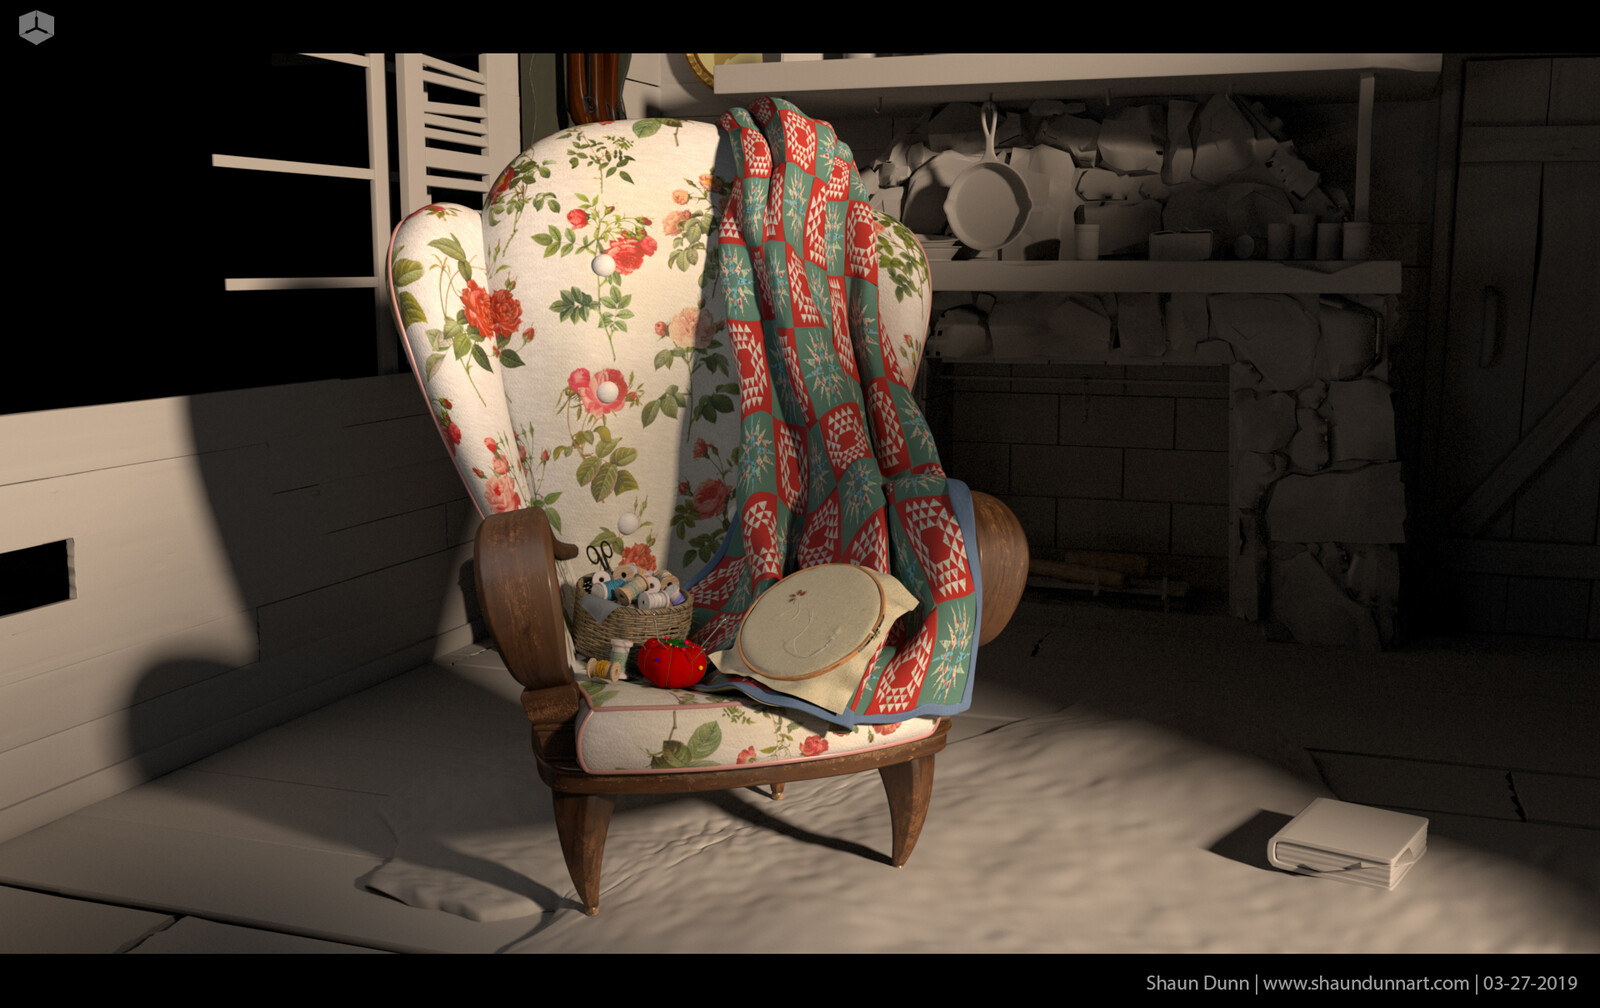 Early texture work on grandma's chair.